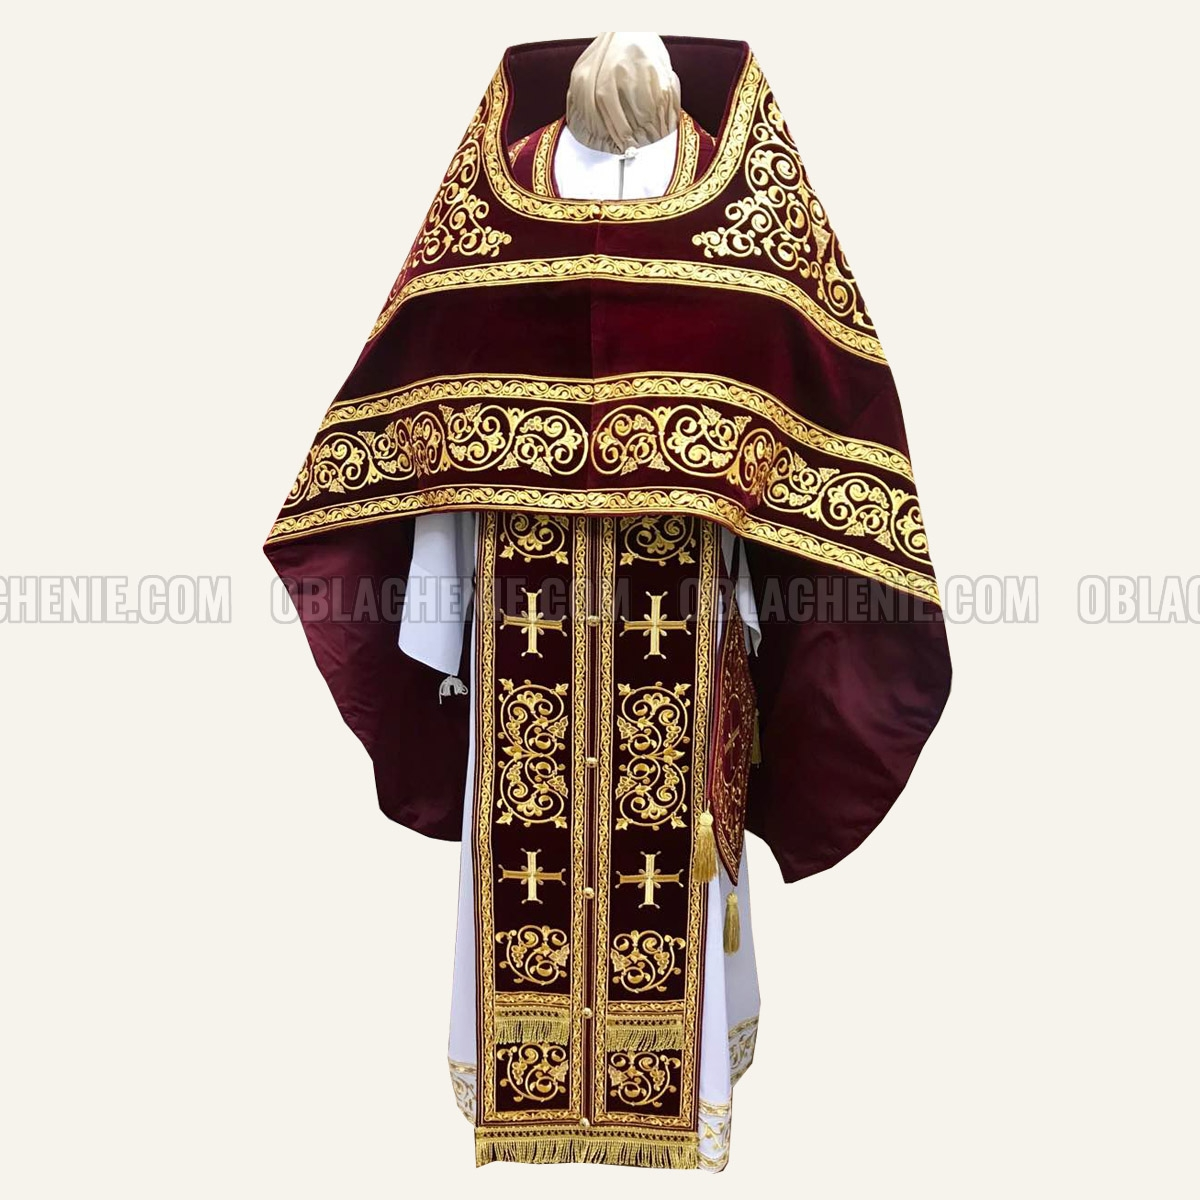 Embroidered priest's vestments 10654